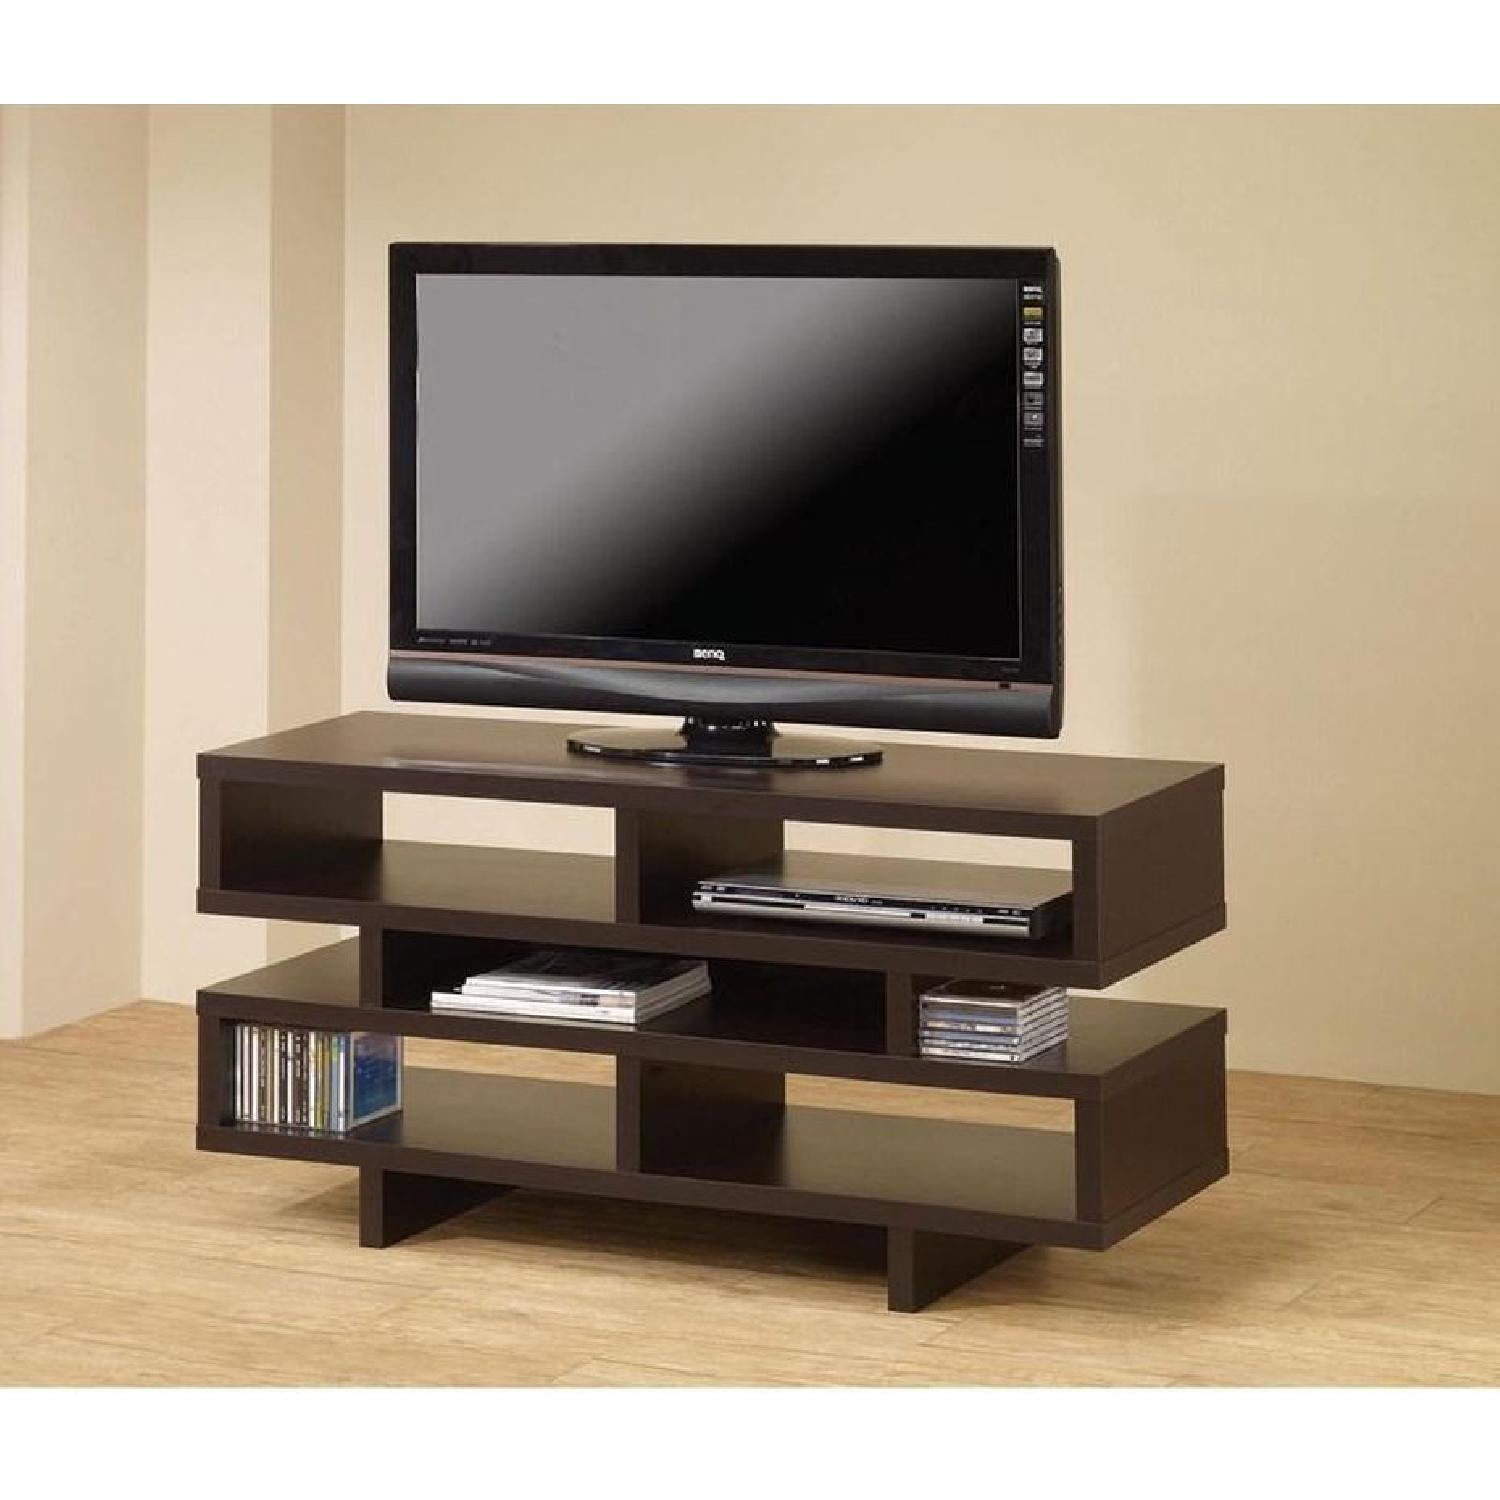 TV Stand In Rustic Oak Finish w/ 2 Cabinets & 2 Drawers - image-8